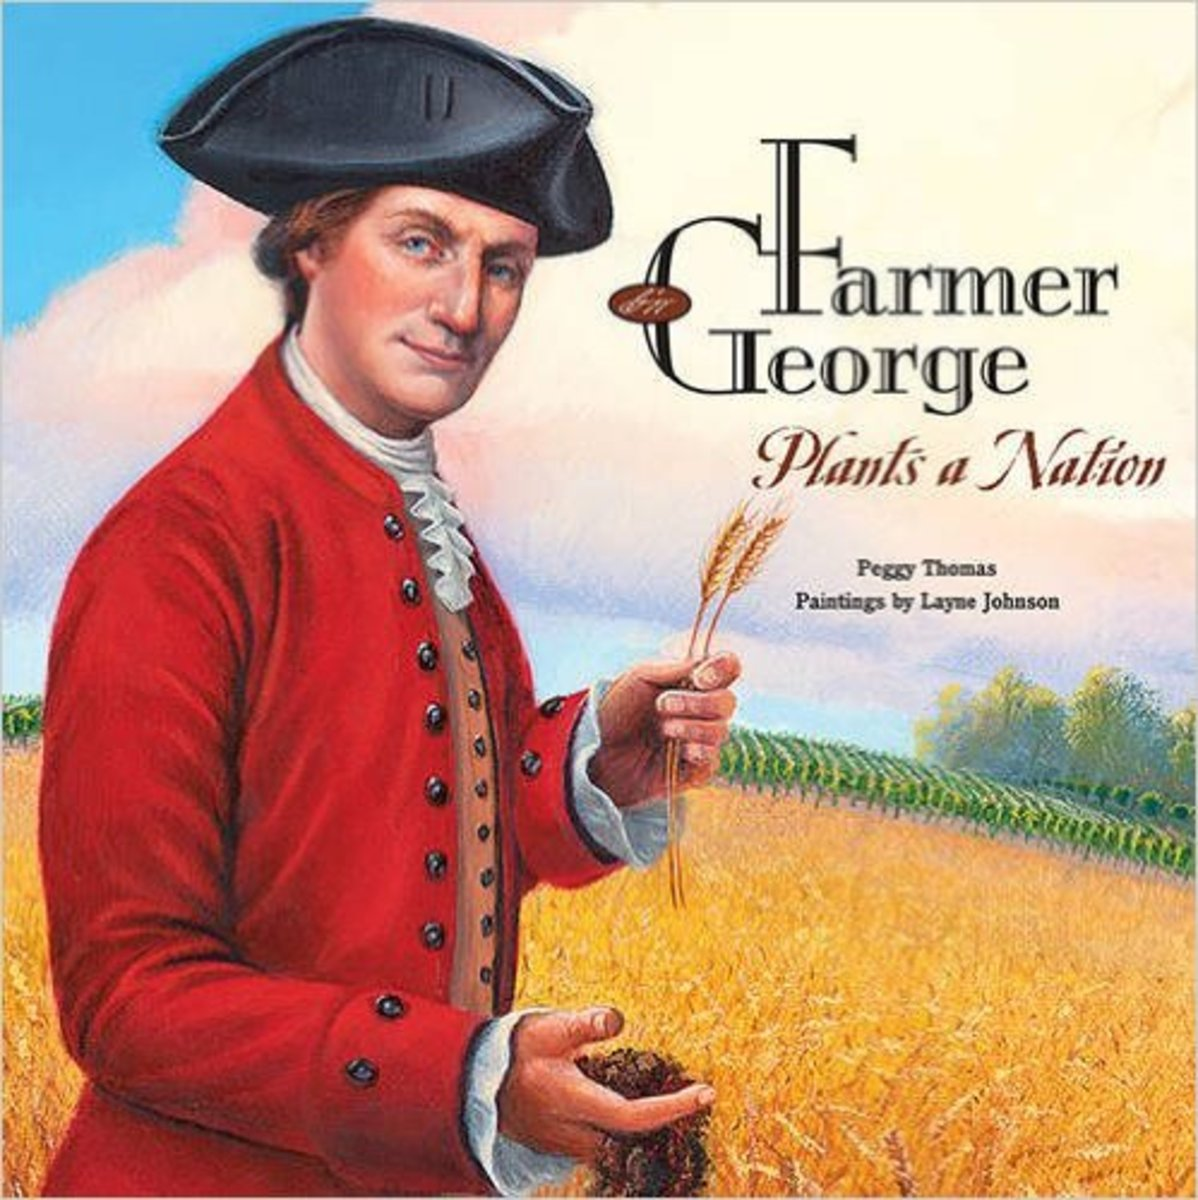 Farmer George Plants a Nation by Peggy Thomas - Book images are from amazon .com.